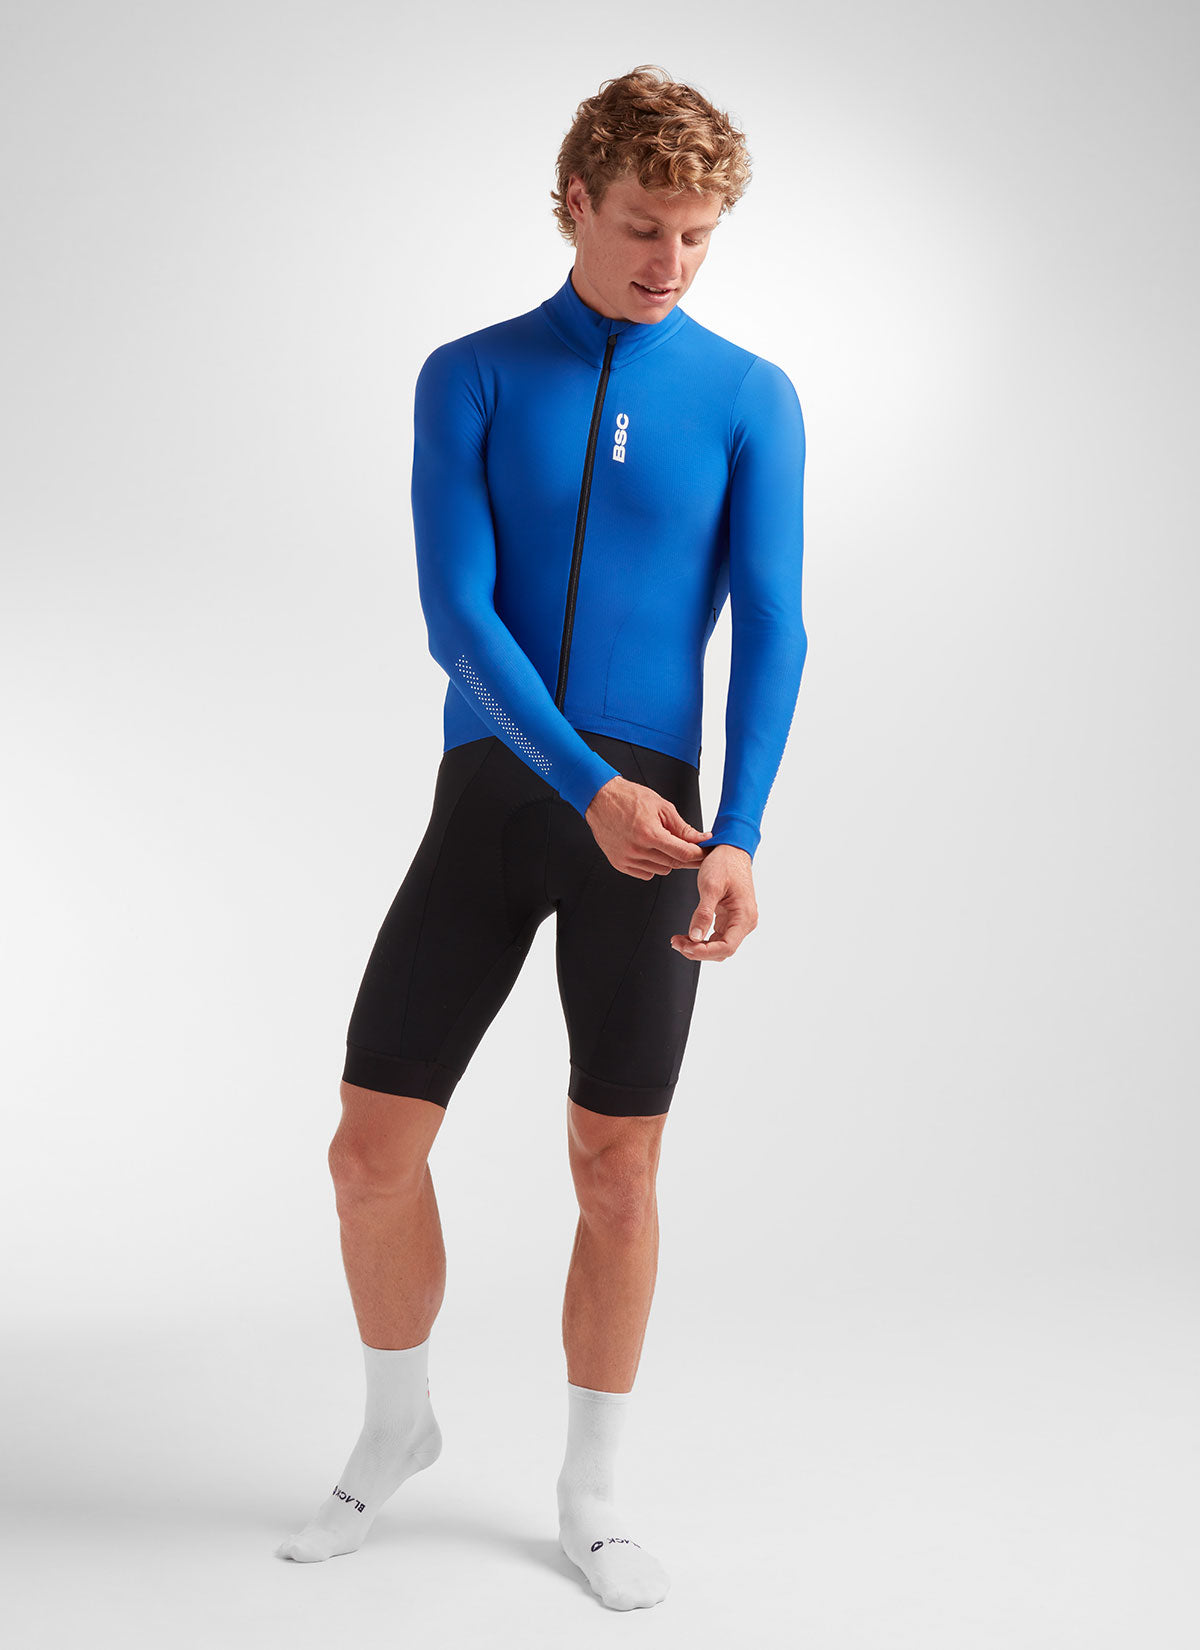 Men's Elements LS Thermal Jersey - Royal Blue